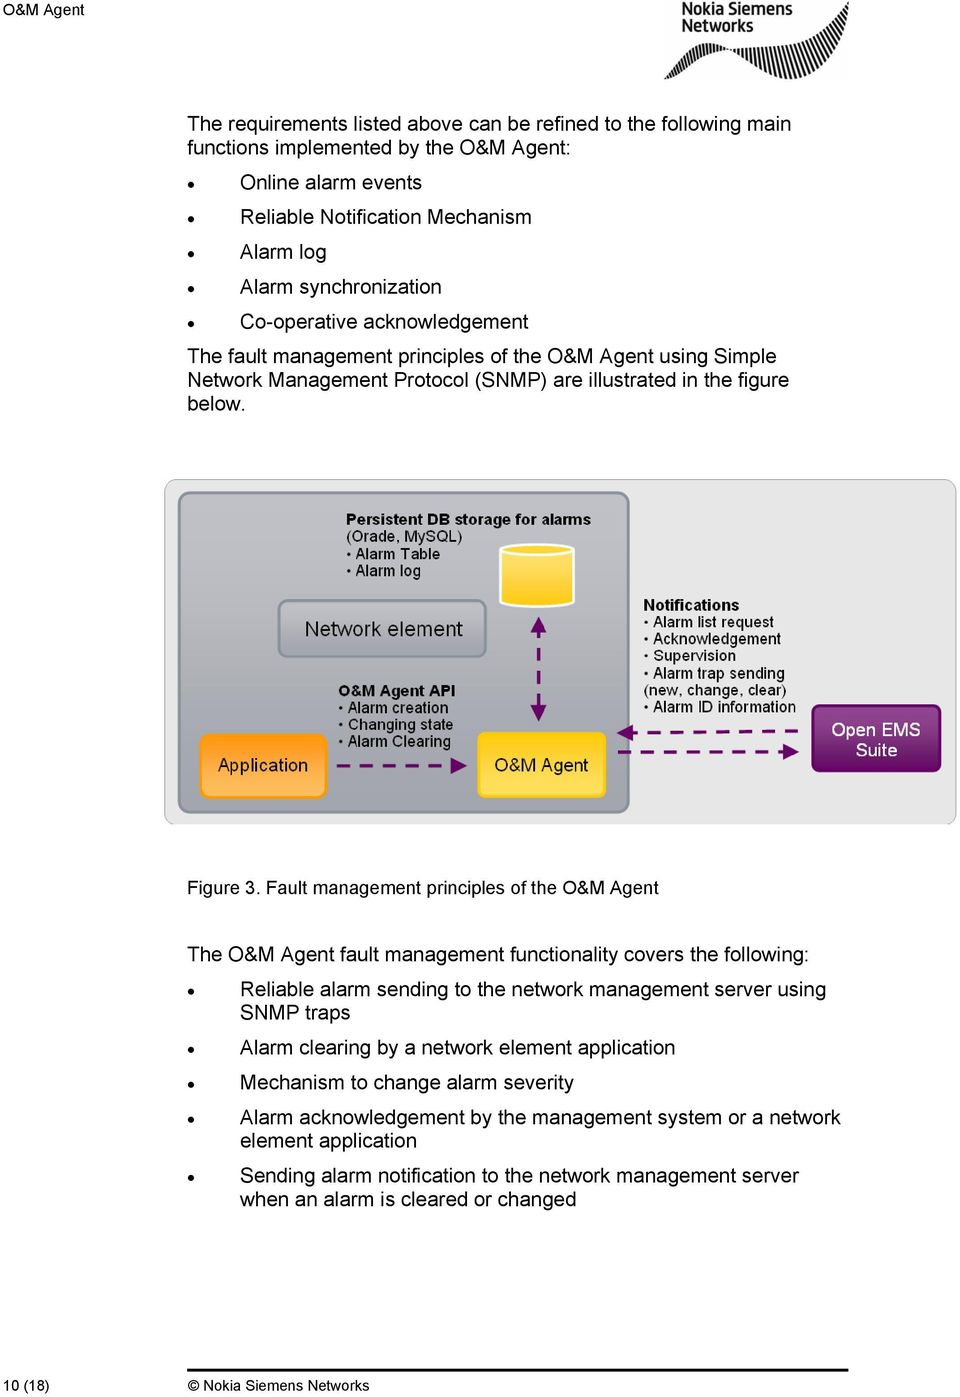 Fault management principles of the O&M Agent The O&M Agent fault management functionality covers the following: Reliable alarm sending to the network management server using SNMP traps Alarm clearing